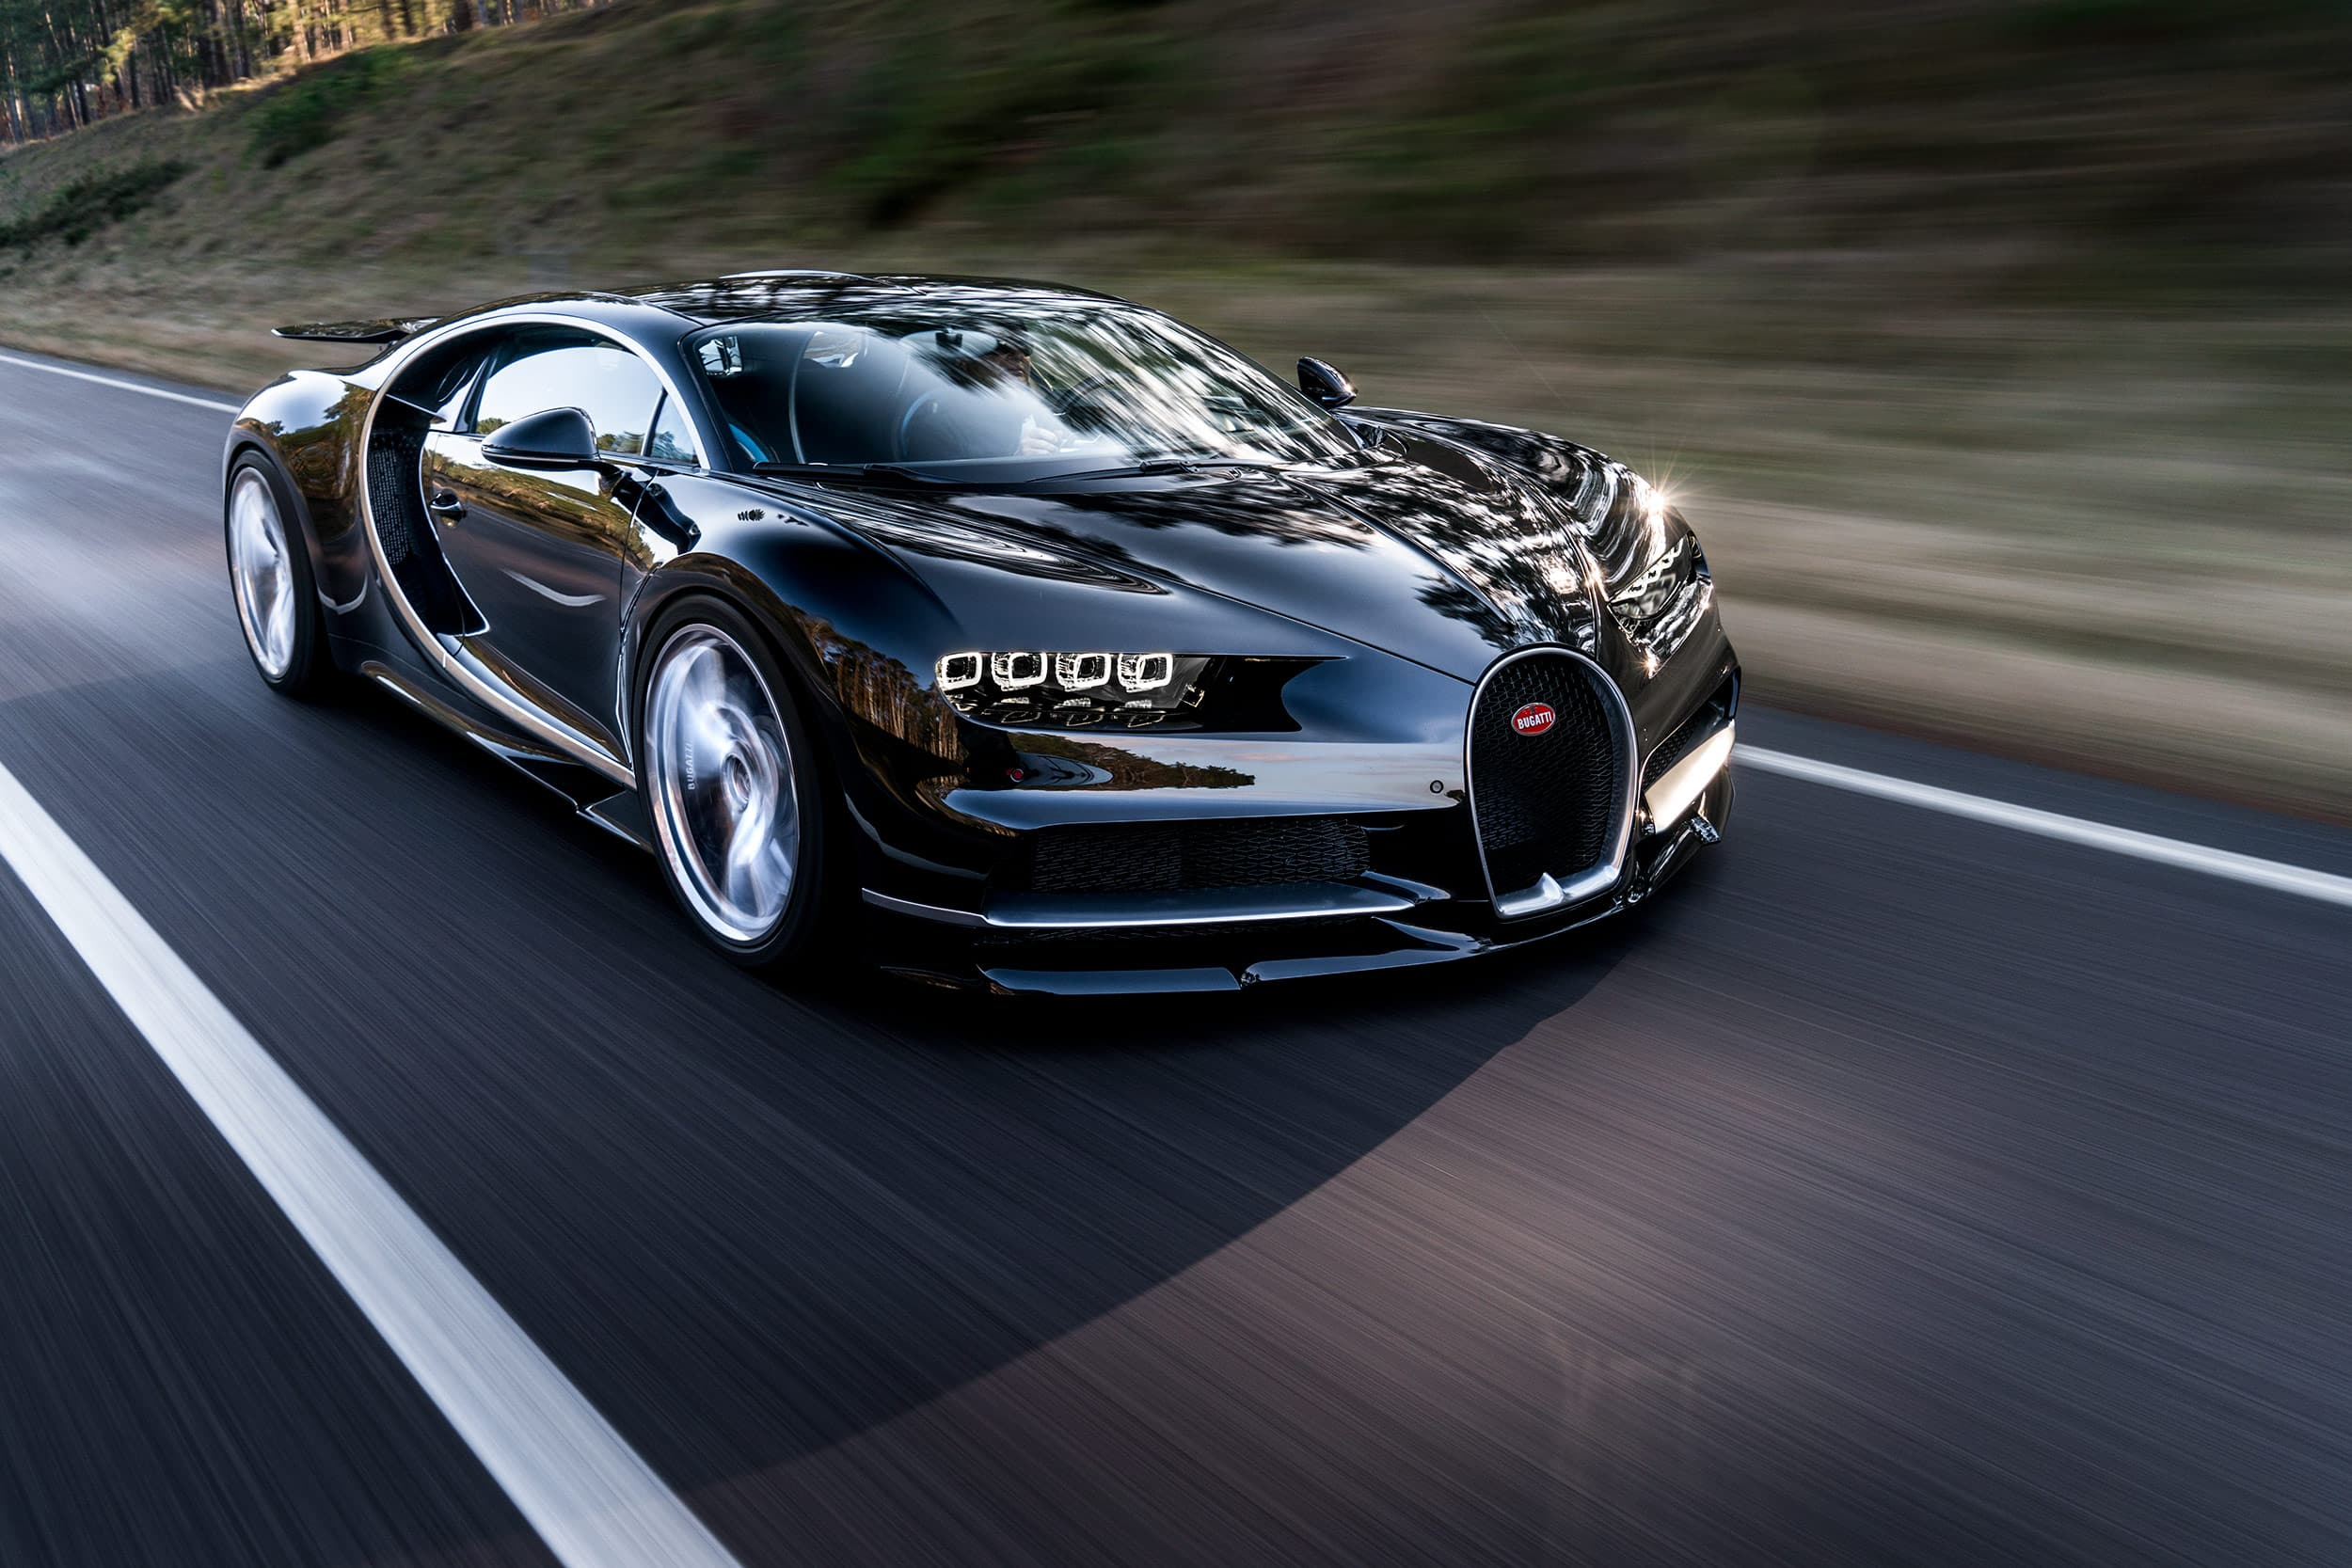 04_CHIRON_dynamic_front_WEB Extraordinary Bugatti Veyron 16.4 Grand Sport Vitesse Verbrauch Cars Trend